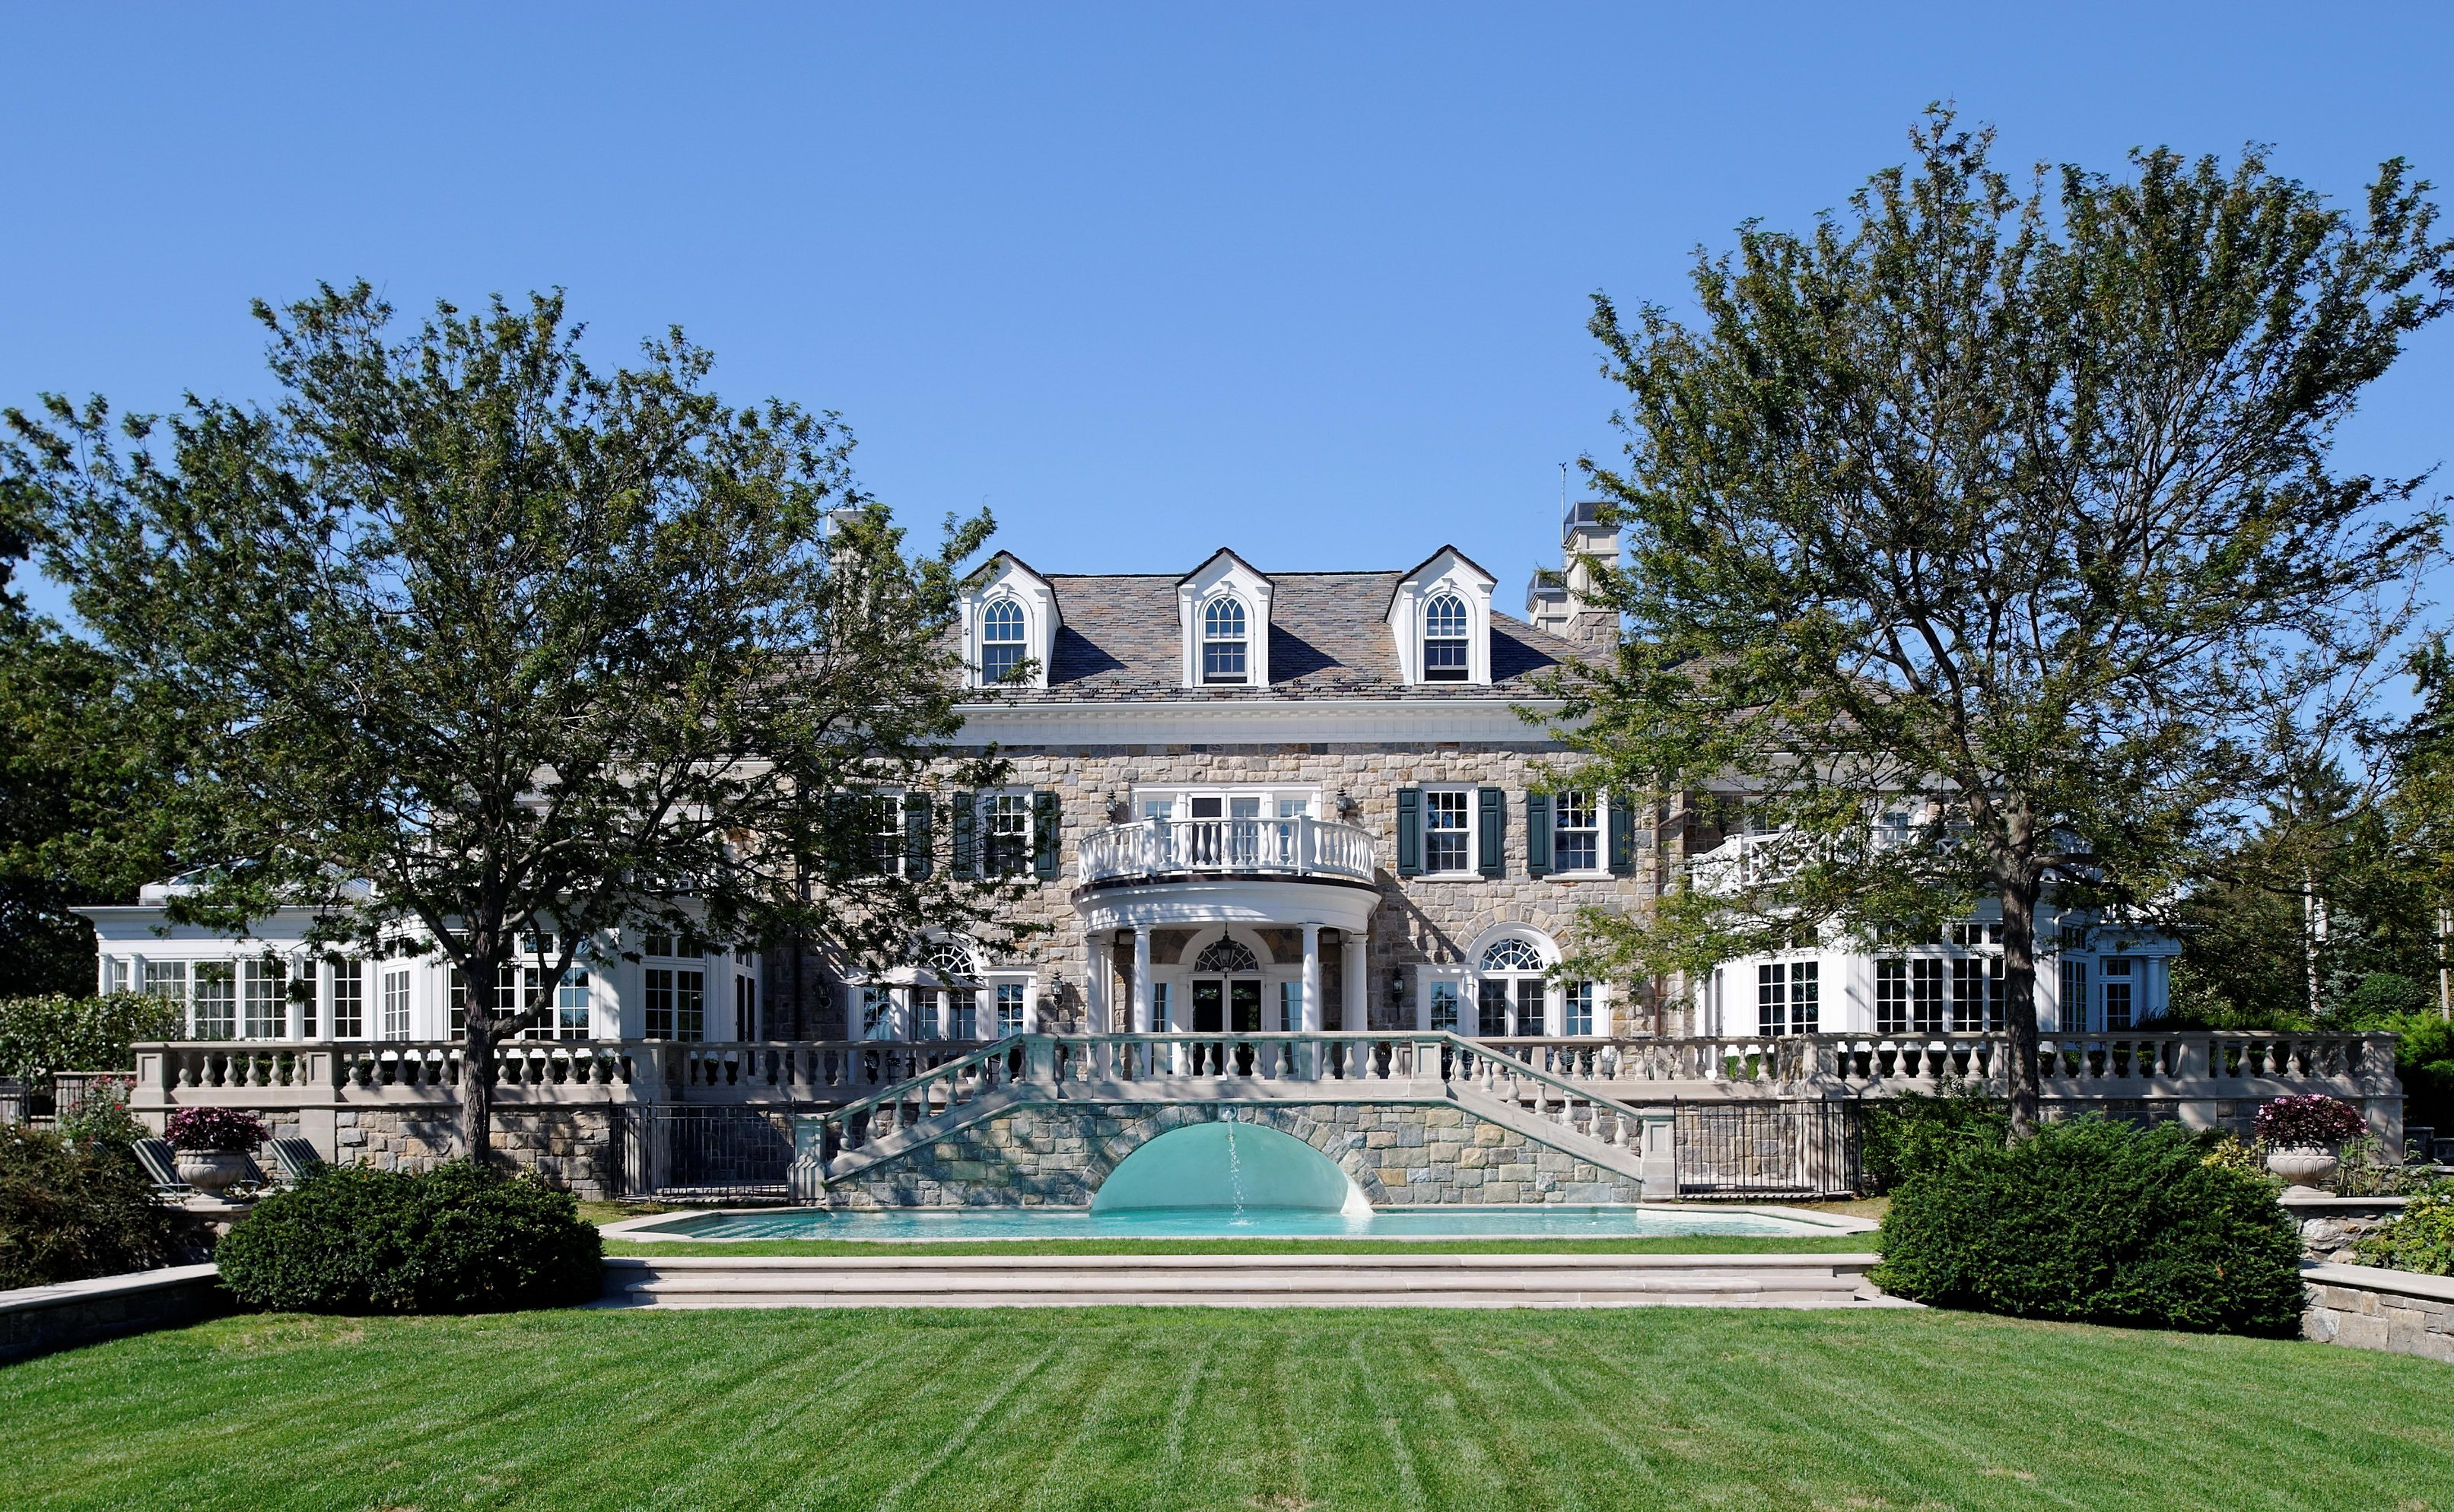 Single Family Home for Sale at A masterpiece 1120 Greacen Point Road Mamaroneck, New York 10543 United States